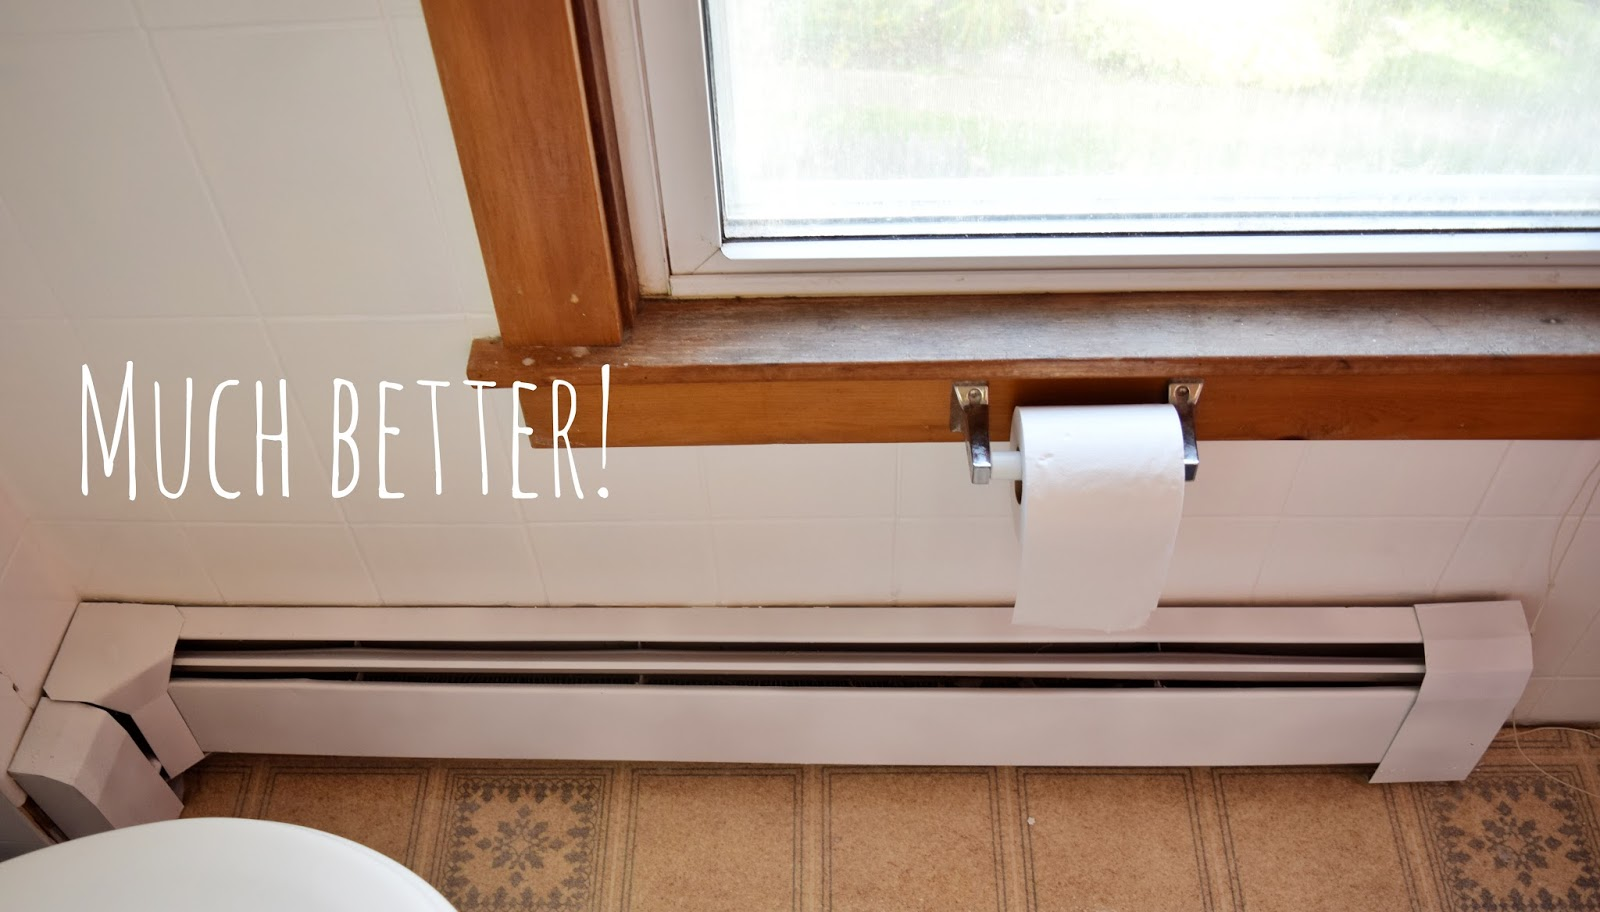 DIY Bathroom: Paint Old Baseboard Heater